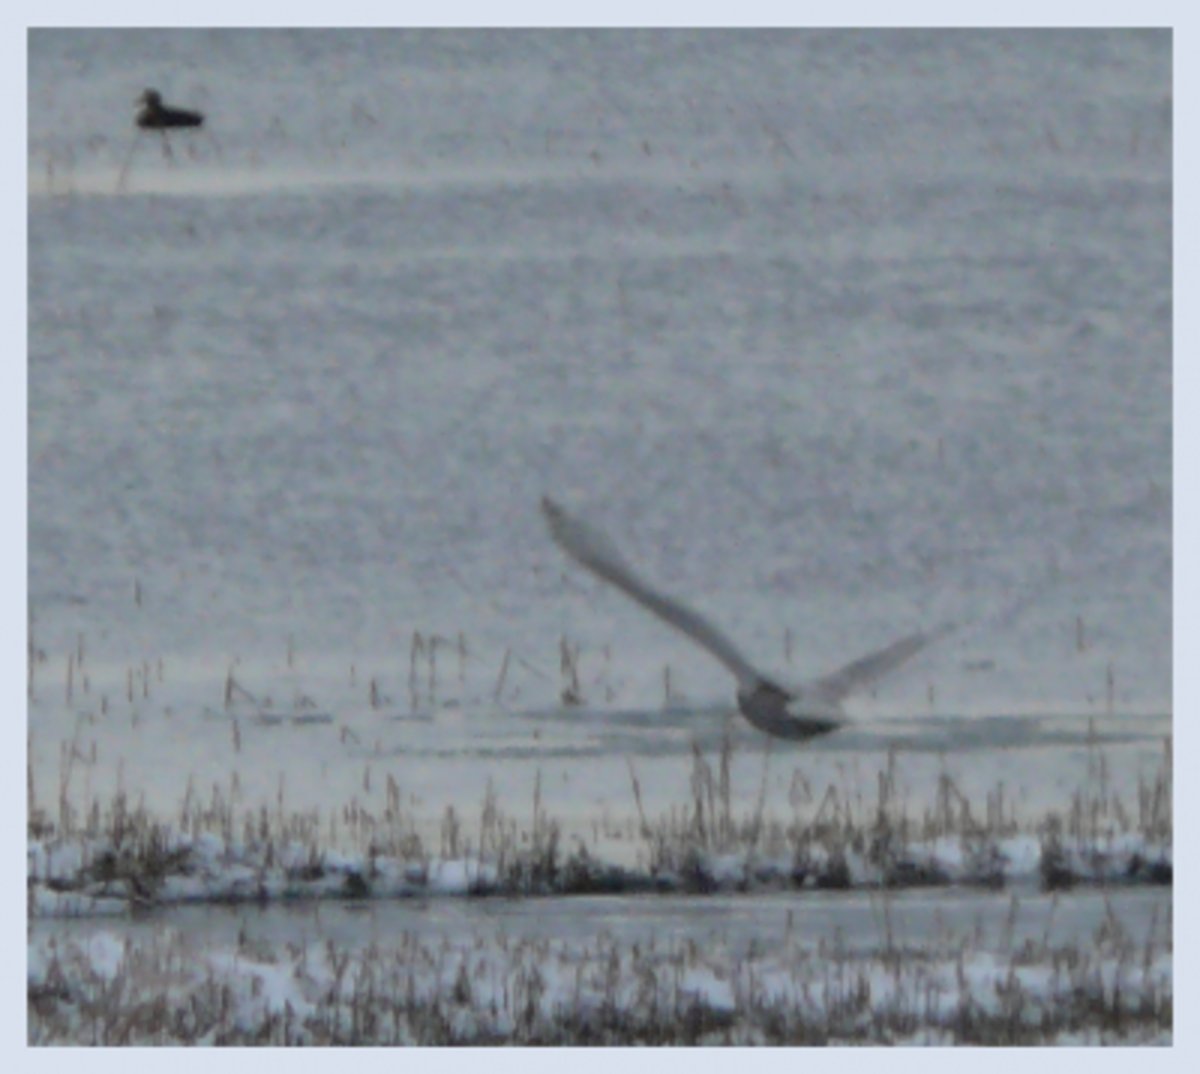 In the distance...a duck. In the foreground...a hungry swooping Snowy Owl!